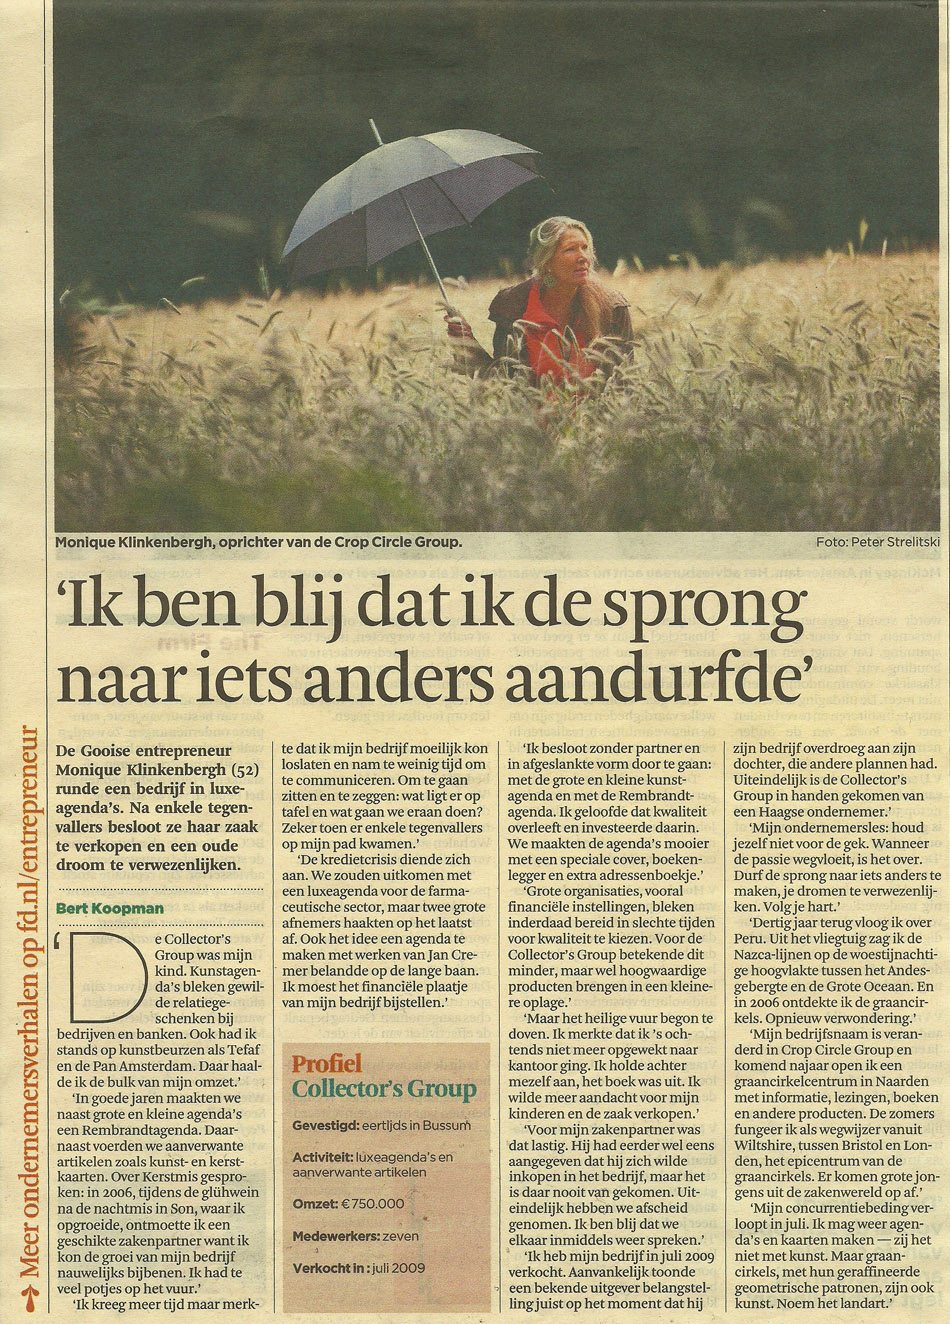 Monique-KlinkenBergh-Crop-Circle-Group-Het-Financieele-dagblad